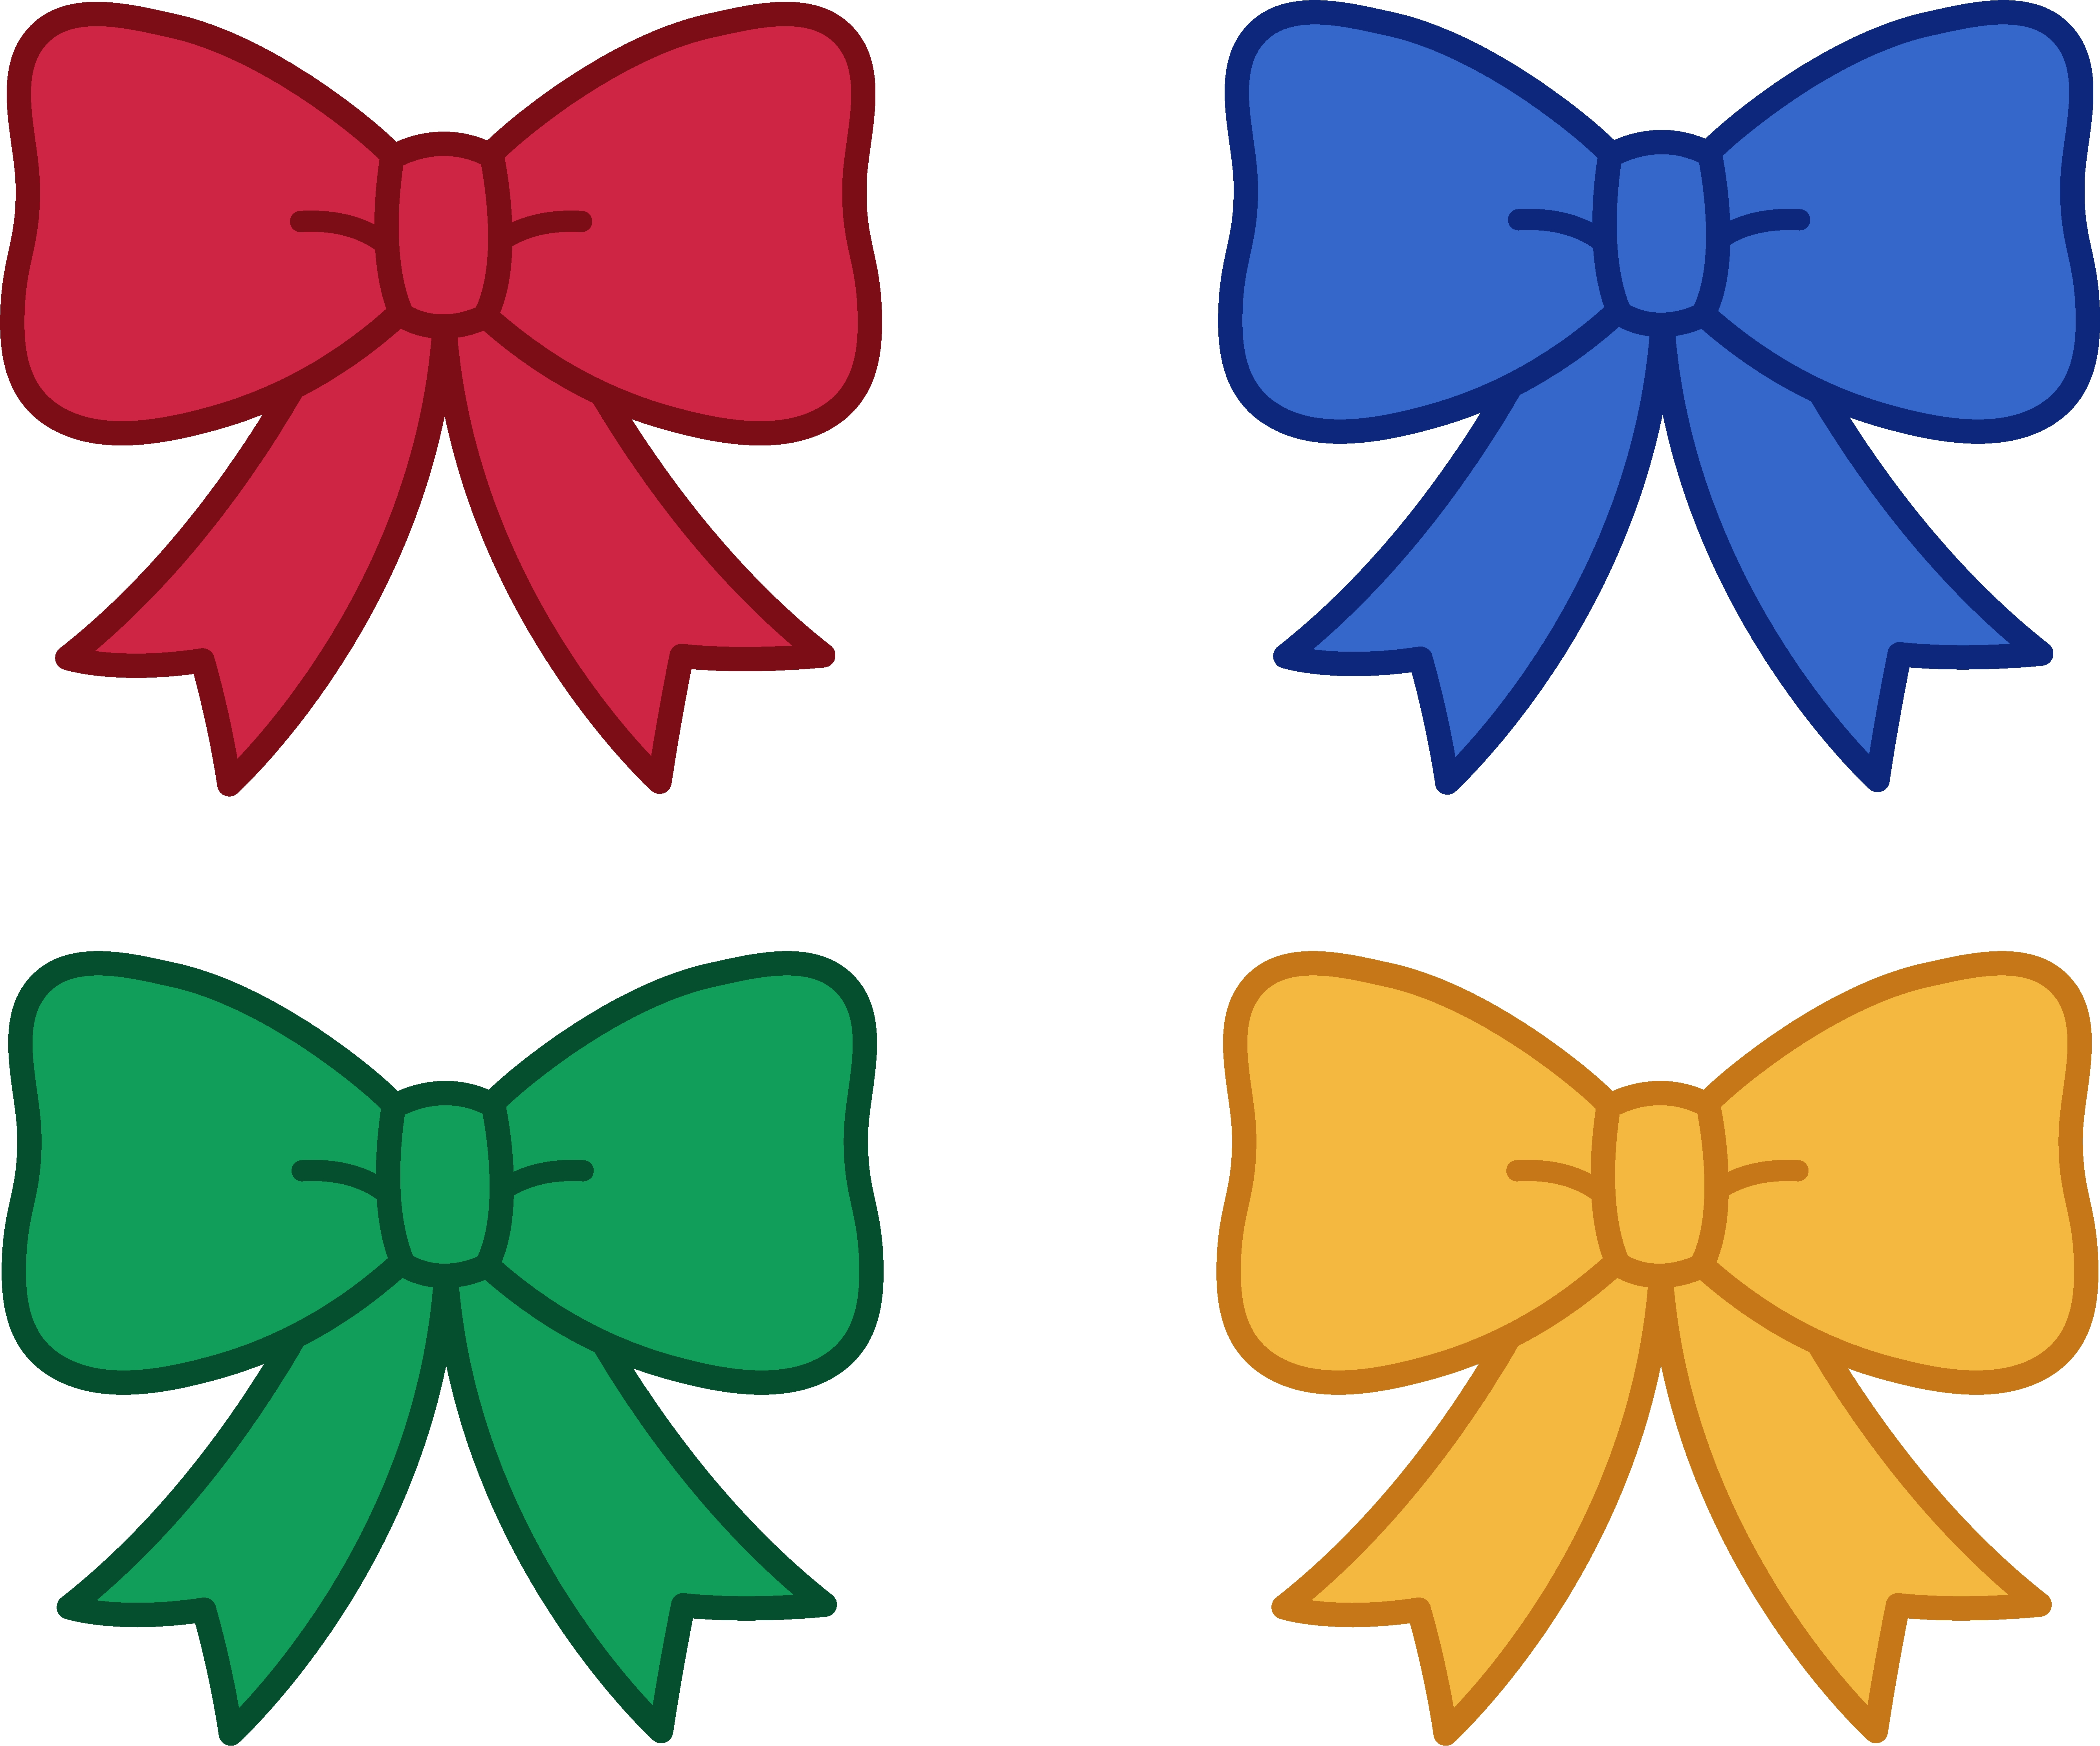 Bow clipart cute, Bow cute Transparent FREE for download on.